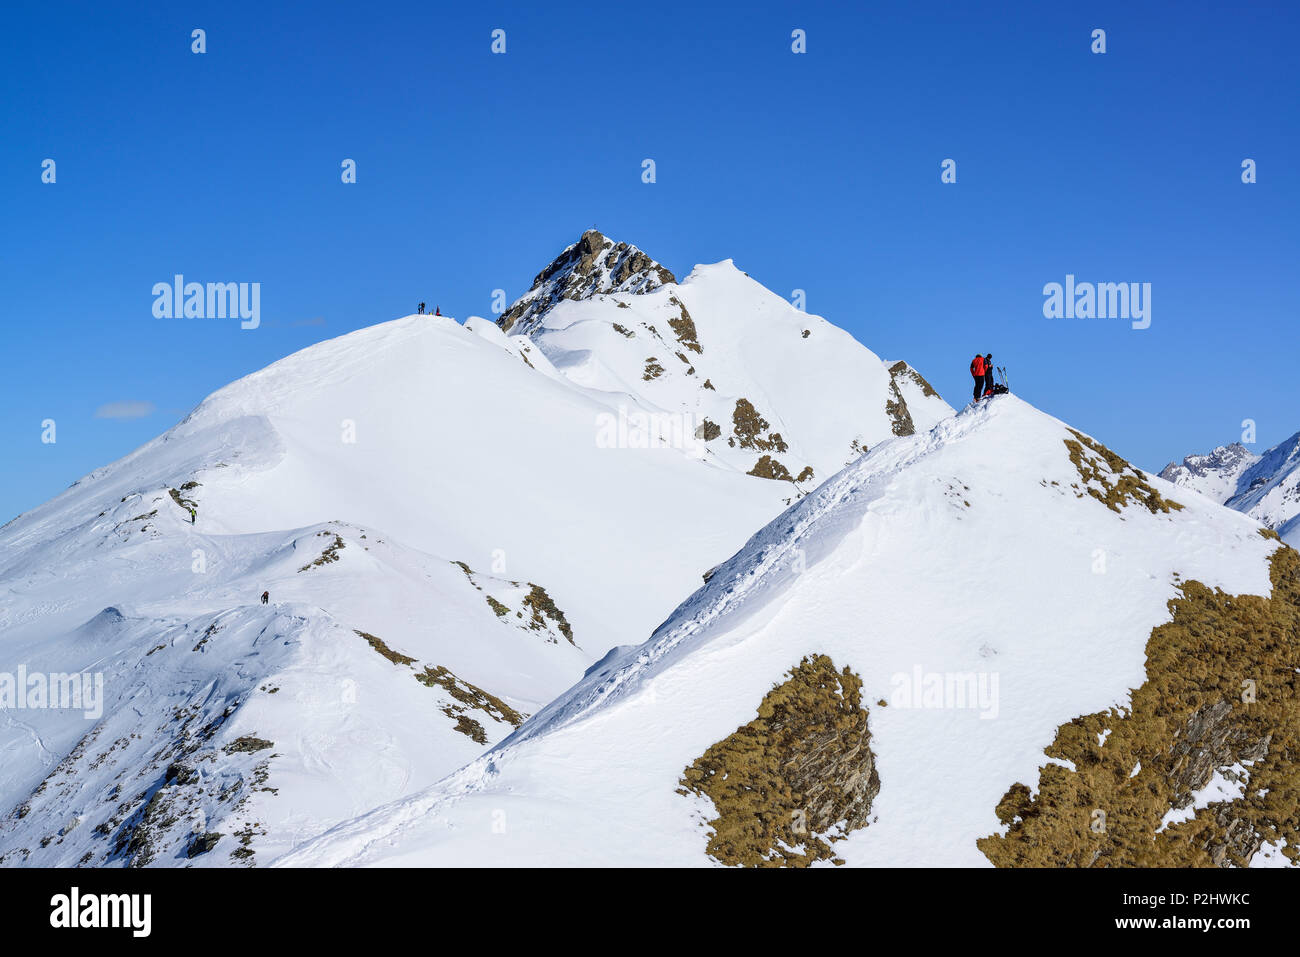 Several persons back-country skiing standing on a ridge between Gammerspitze and Hohe Warte, Gammerspitze, valley of Schmirn, Zi - Stock Image